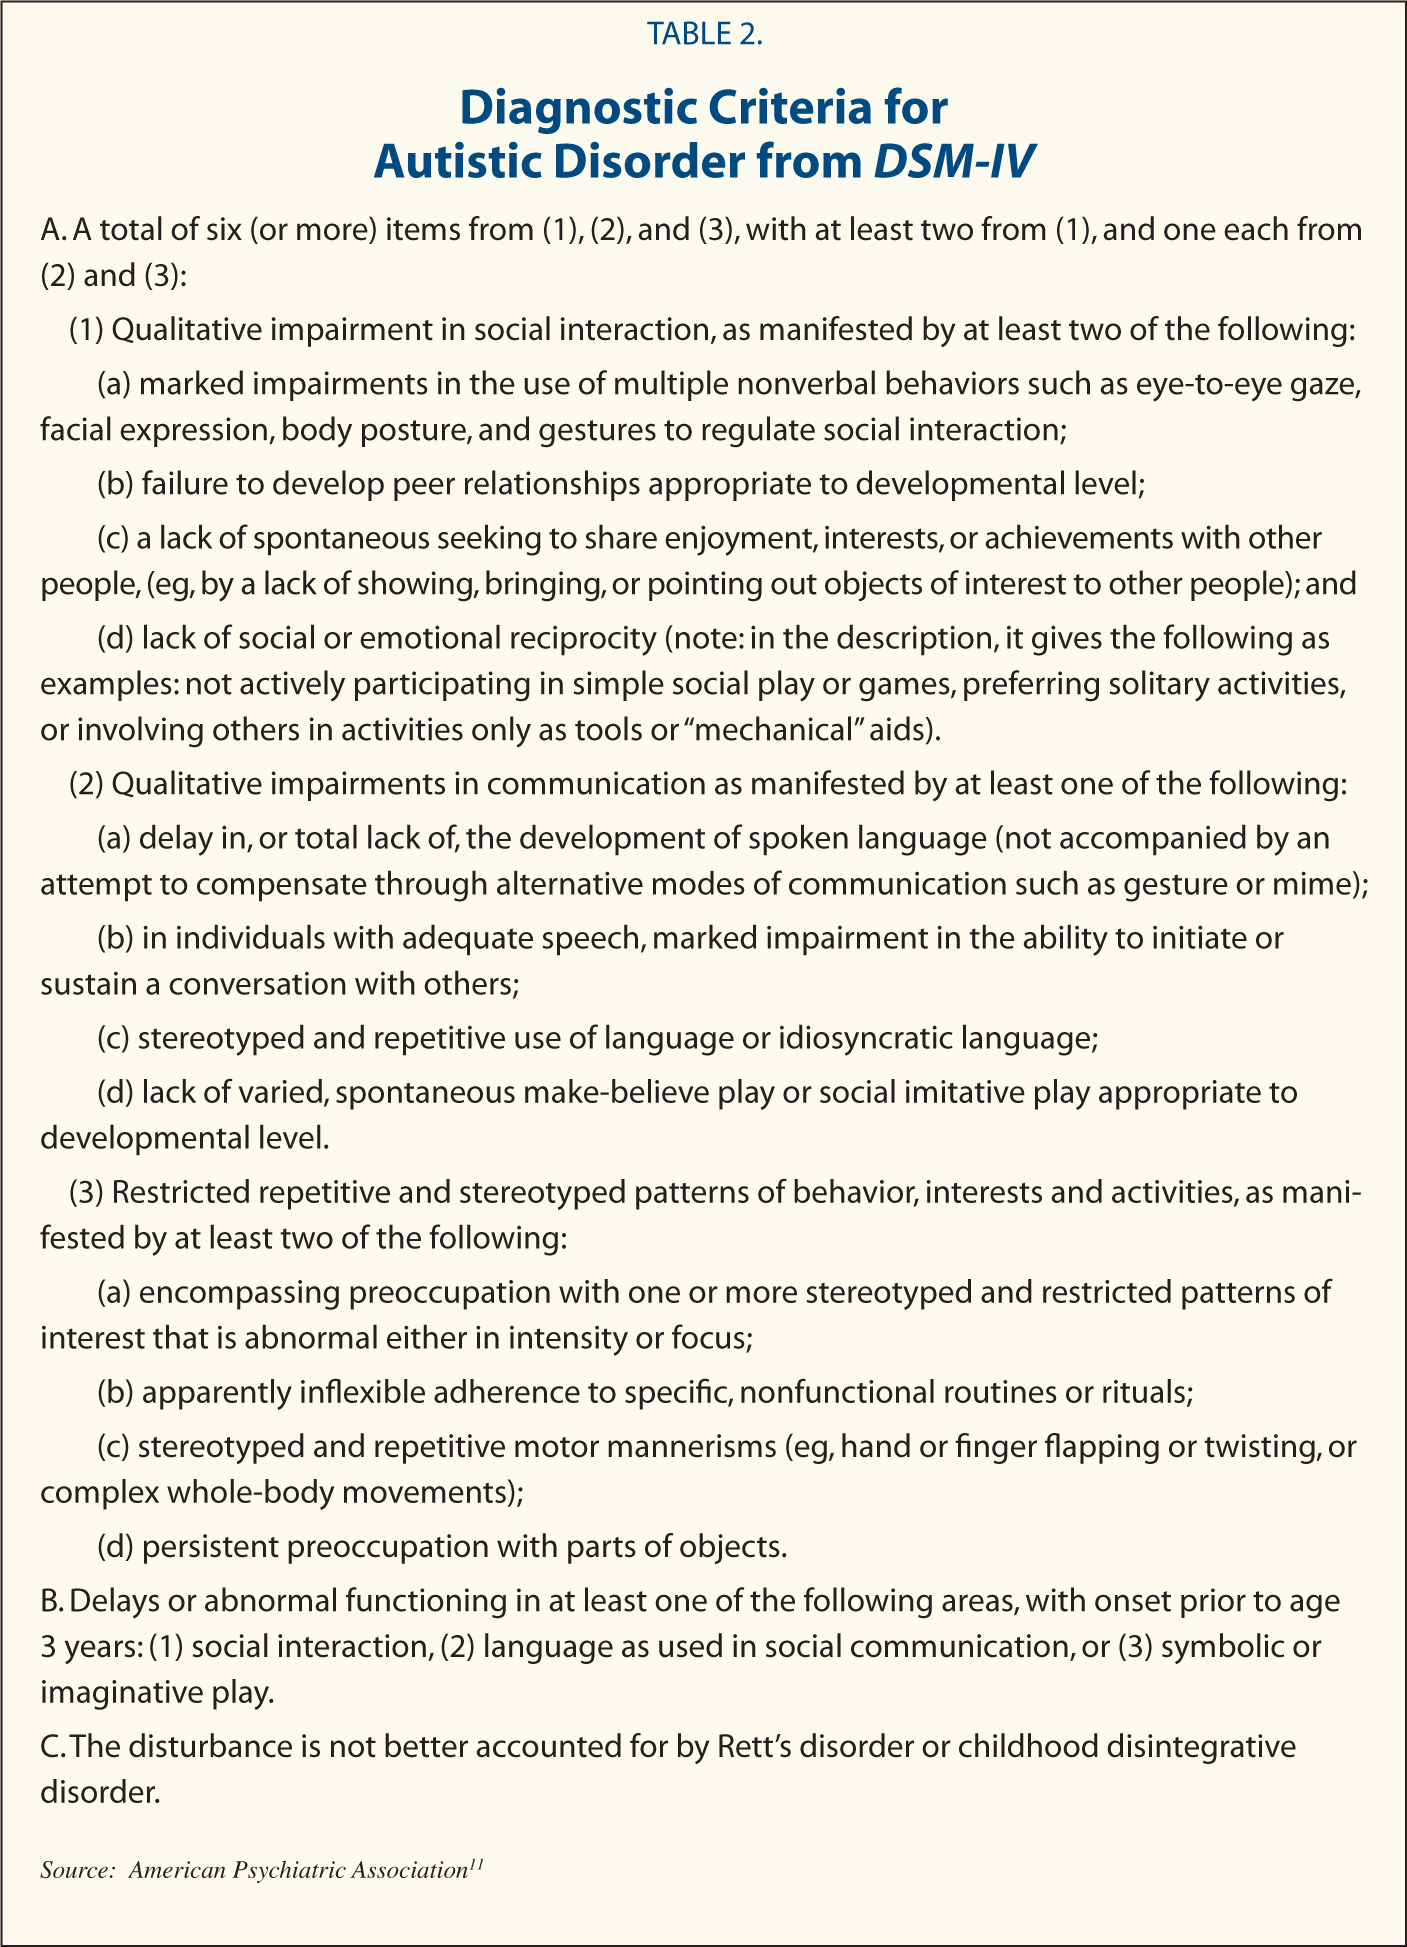 Diagnostic Criteria for Autistic Disorder from DSM-IV